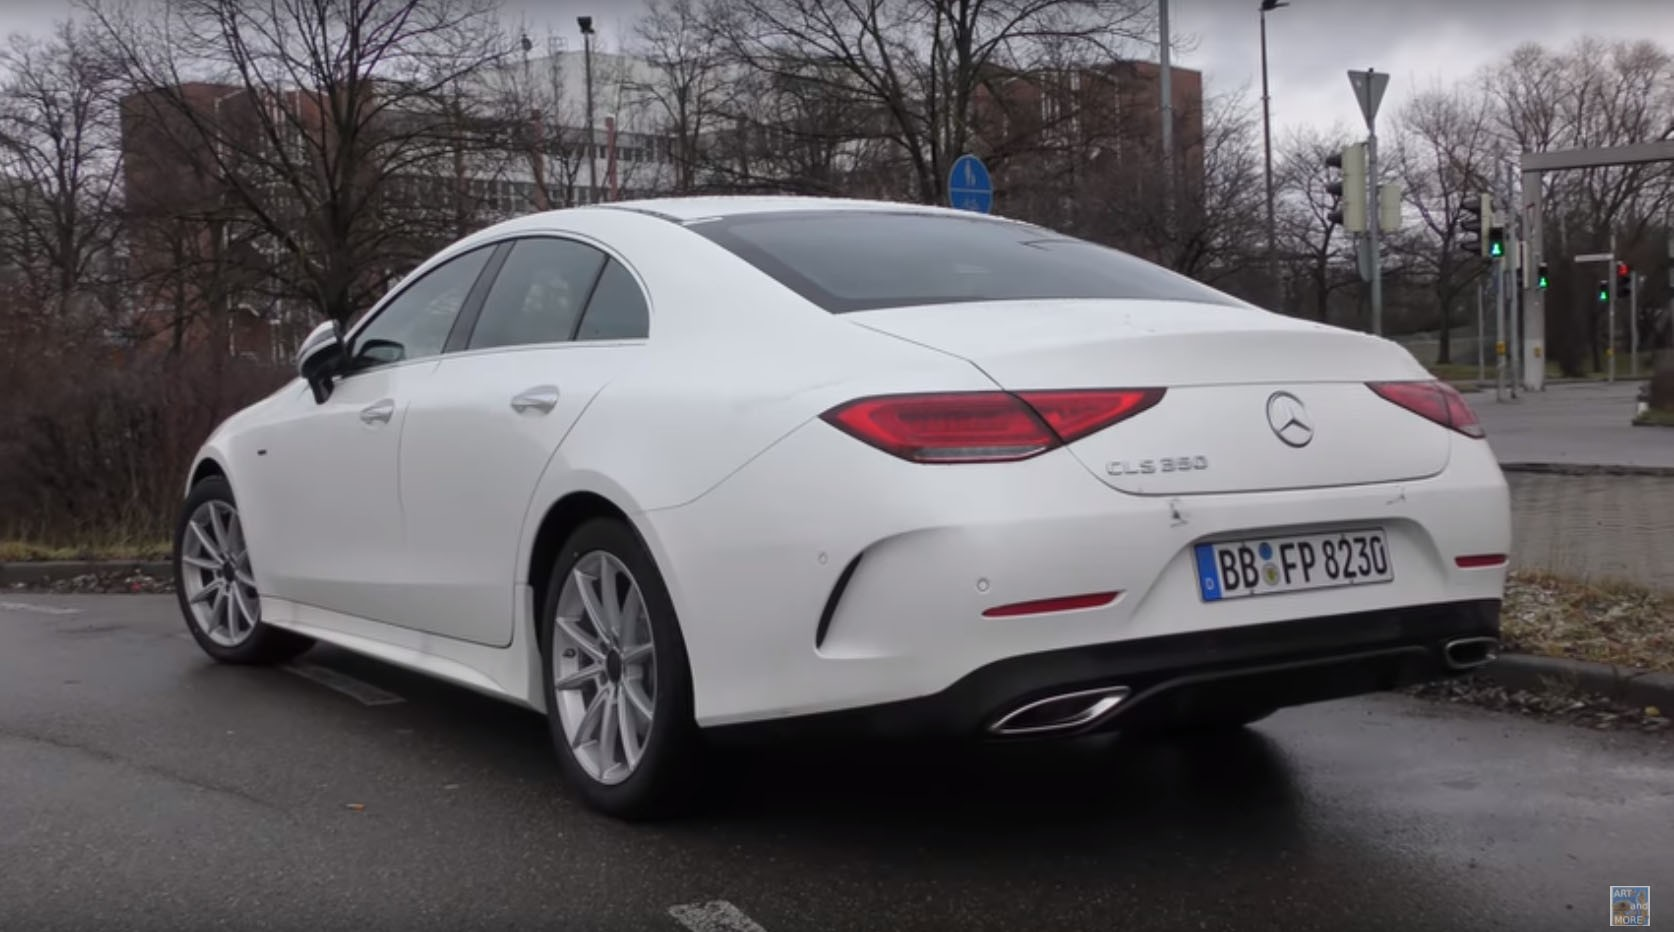 2018 mercedes benz cls 350 looks underwhelming in white